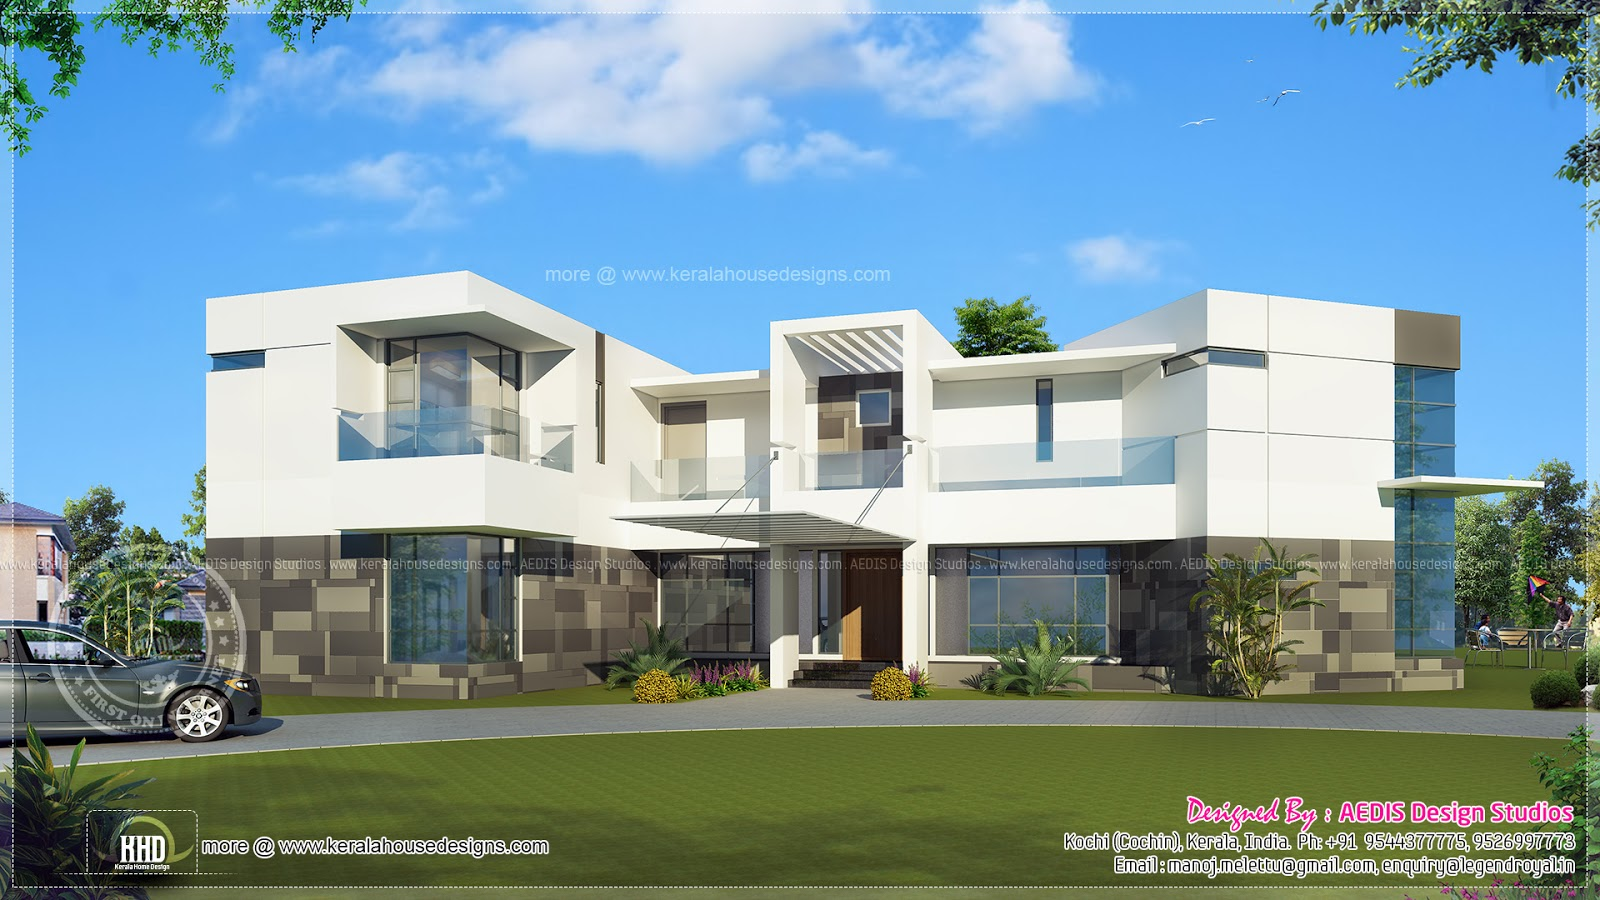 Luxury house exterior in 334 square meter home kerala plans - Houses atticsquare meters ...